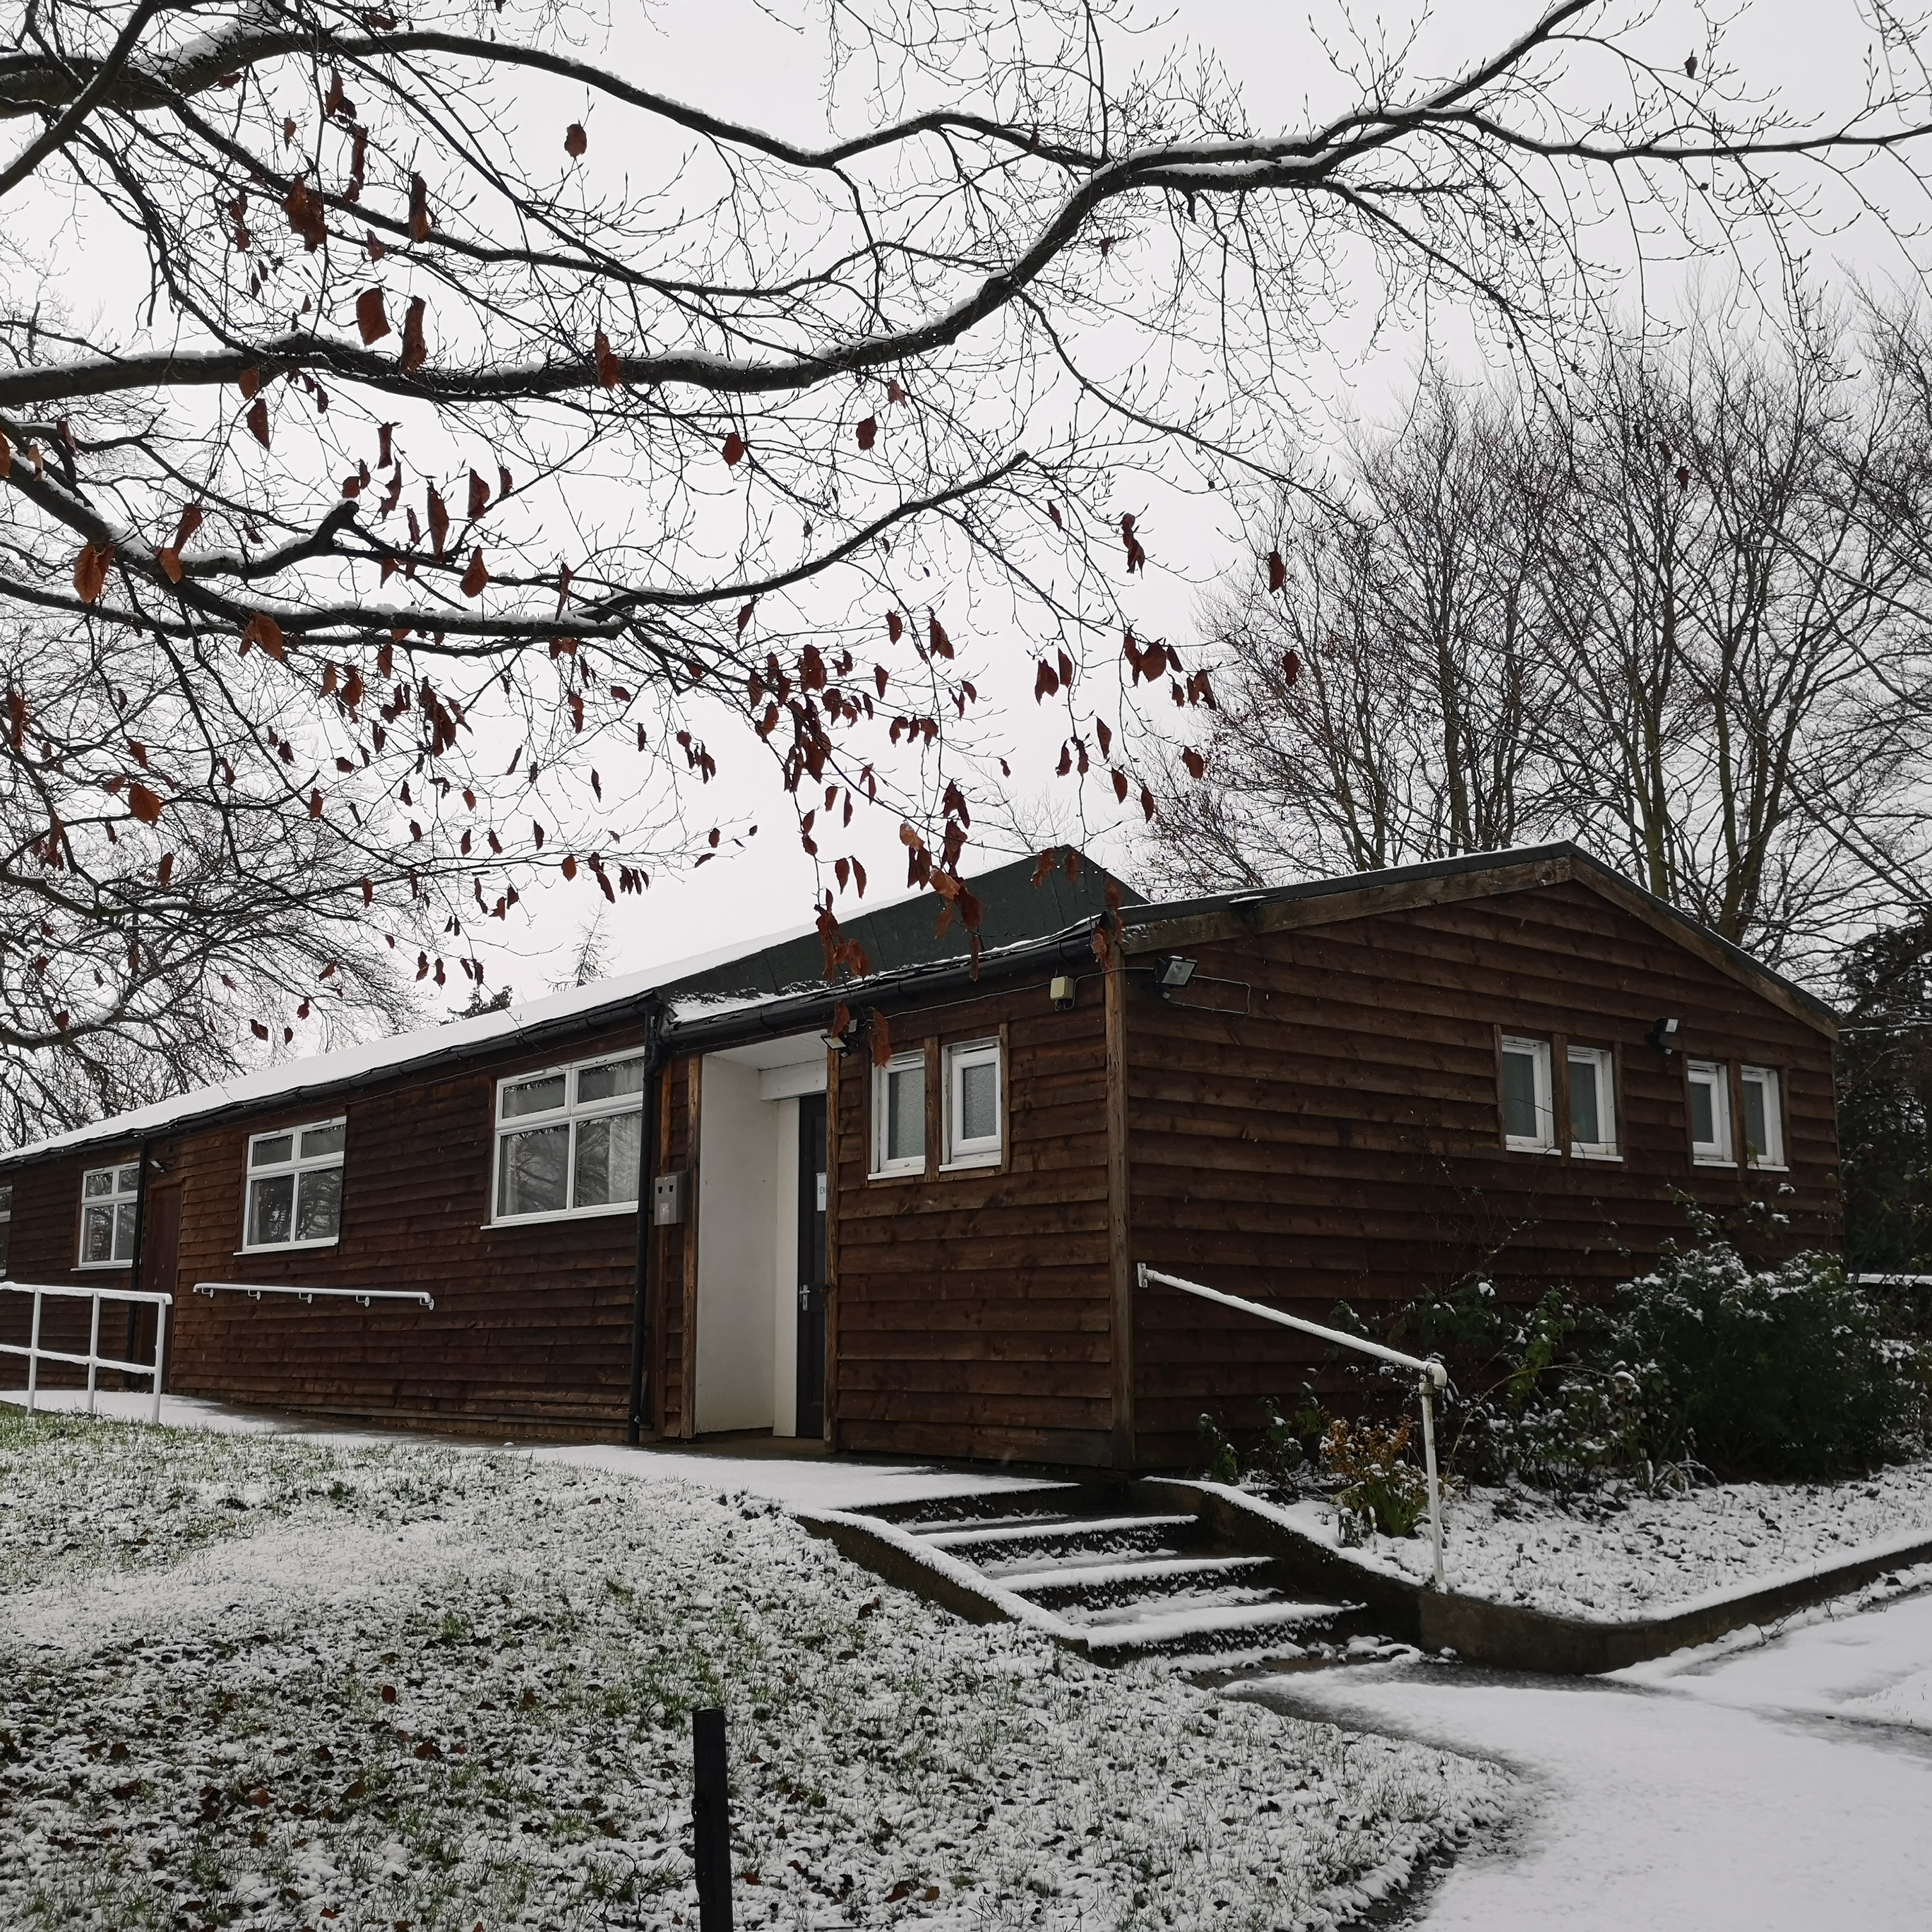 Jan 2021, Sutton Village Hall in snow